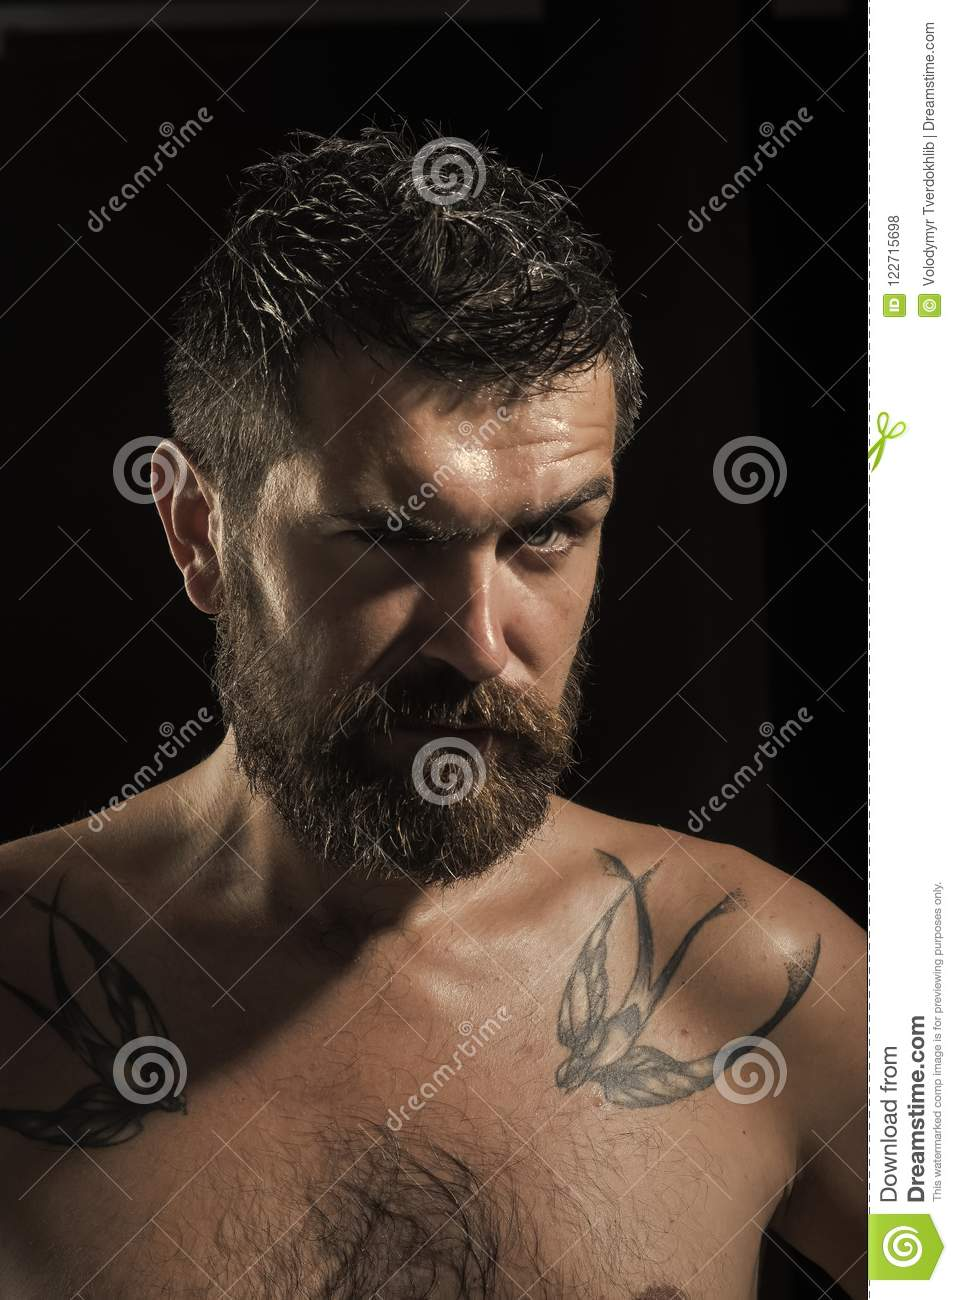 Serious face guy naked pic 440